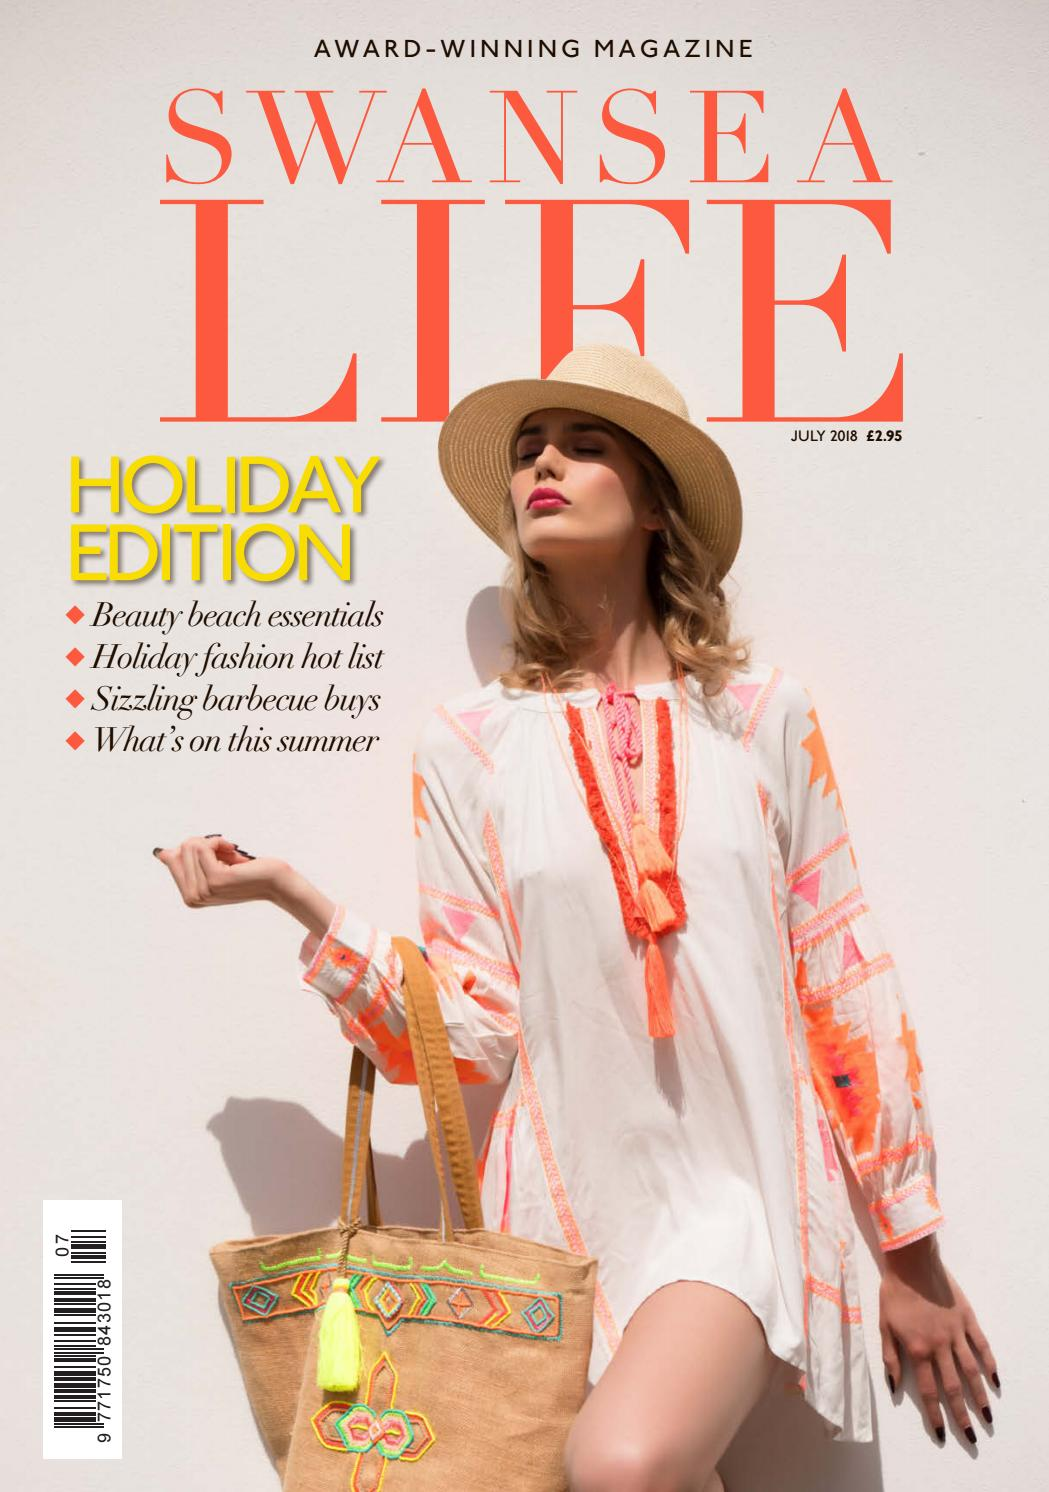 e33c01f68c8 Swansea Life July 2018 by Swansea Life - issuu